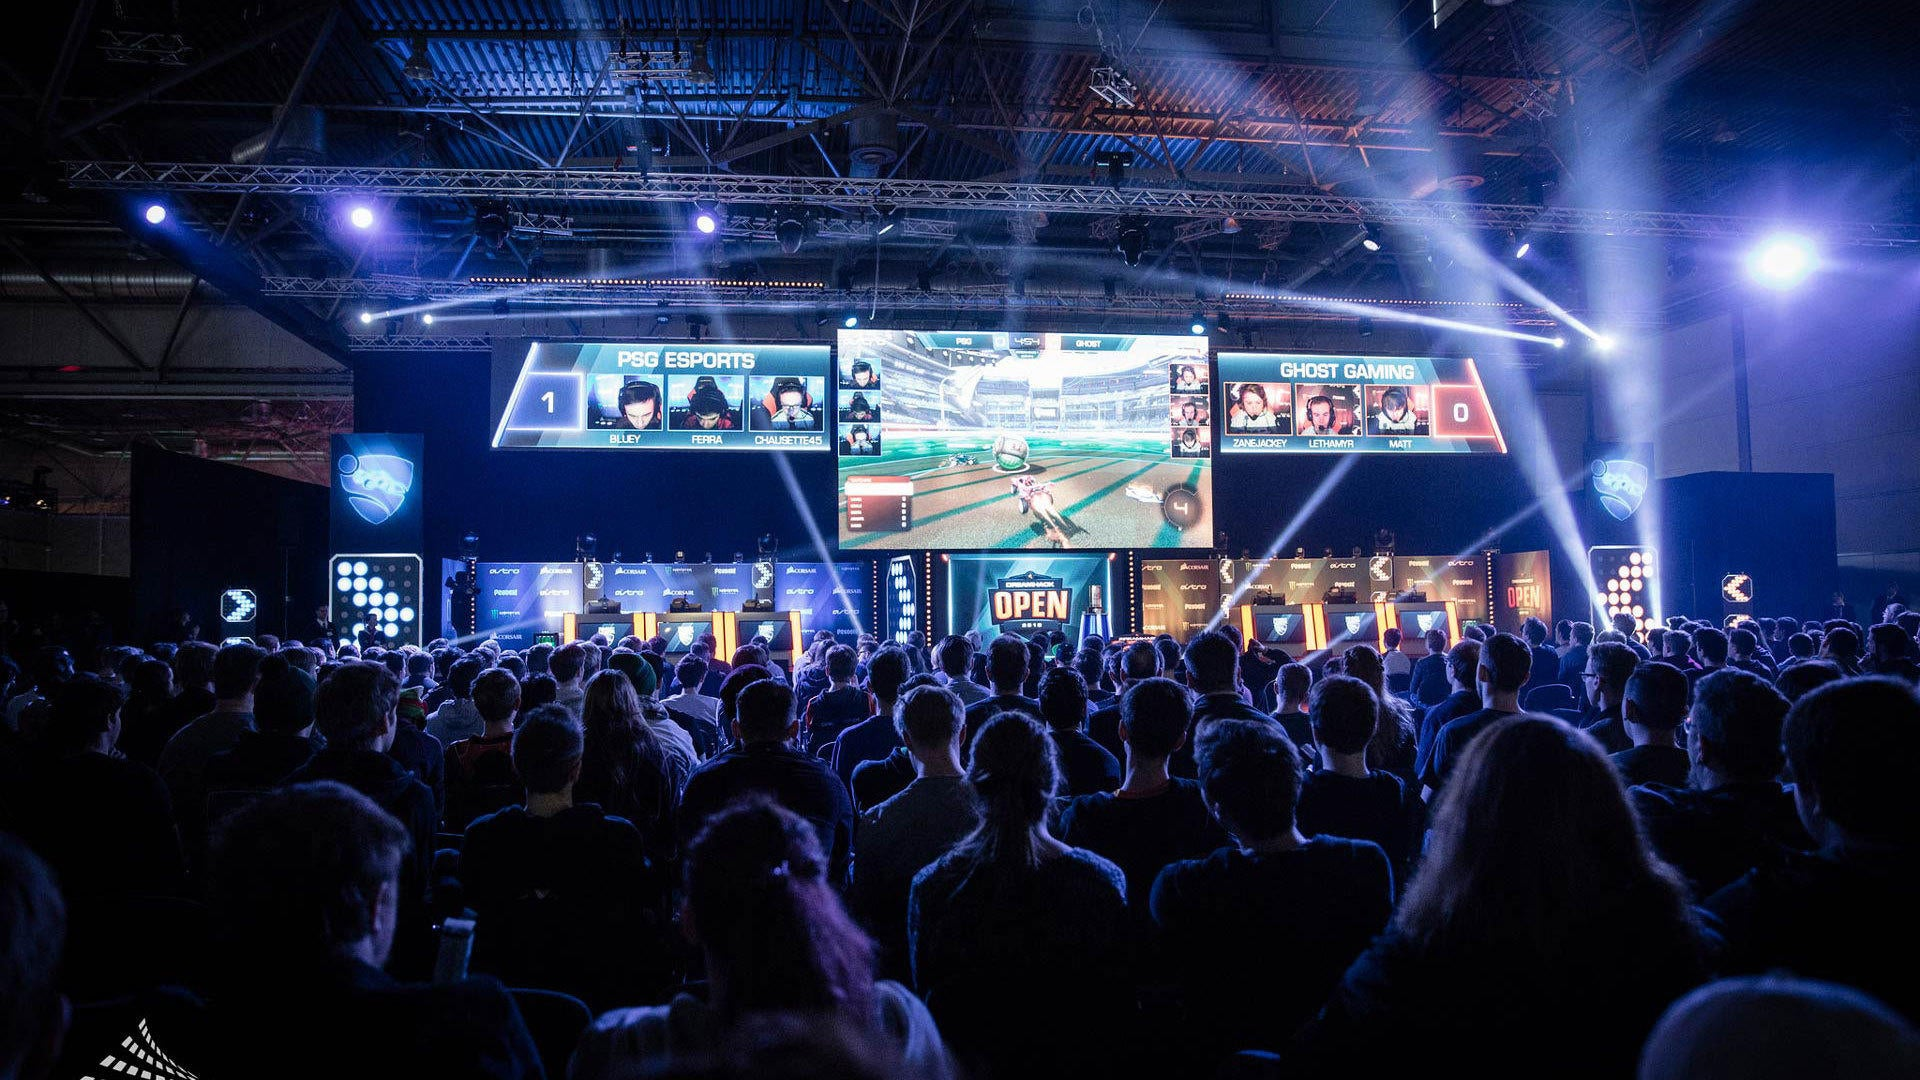 DreamHack Pro Circuit Kicks Off in 2019! Image